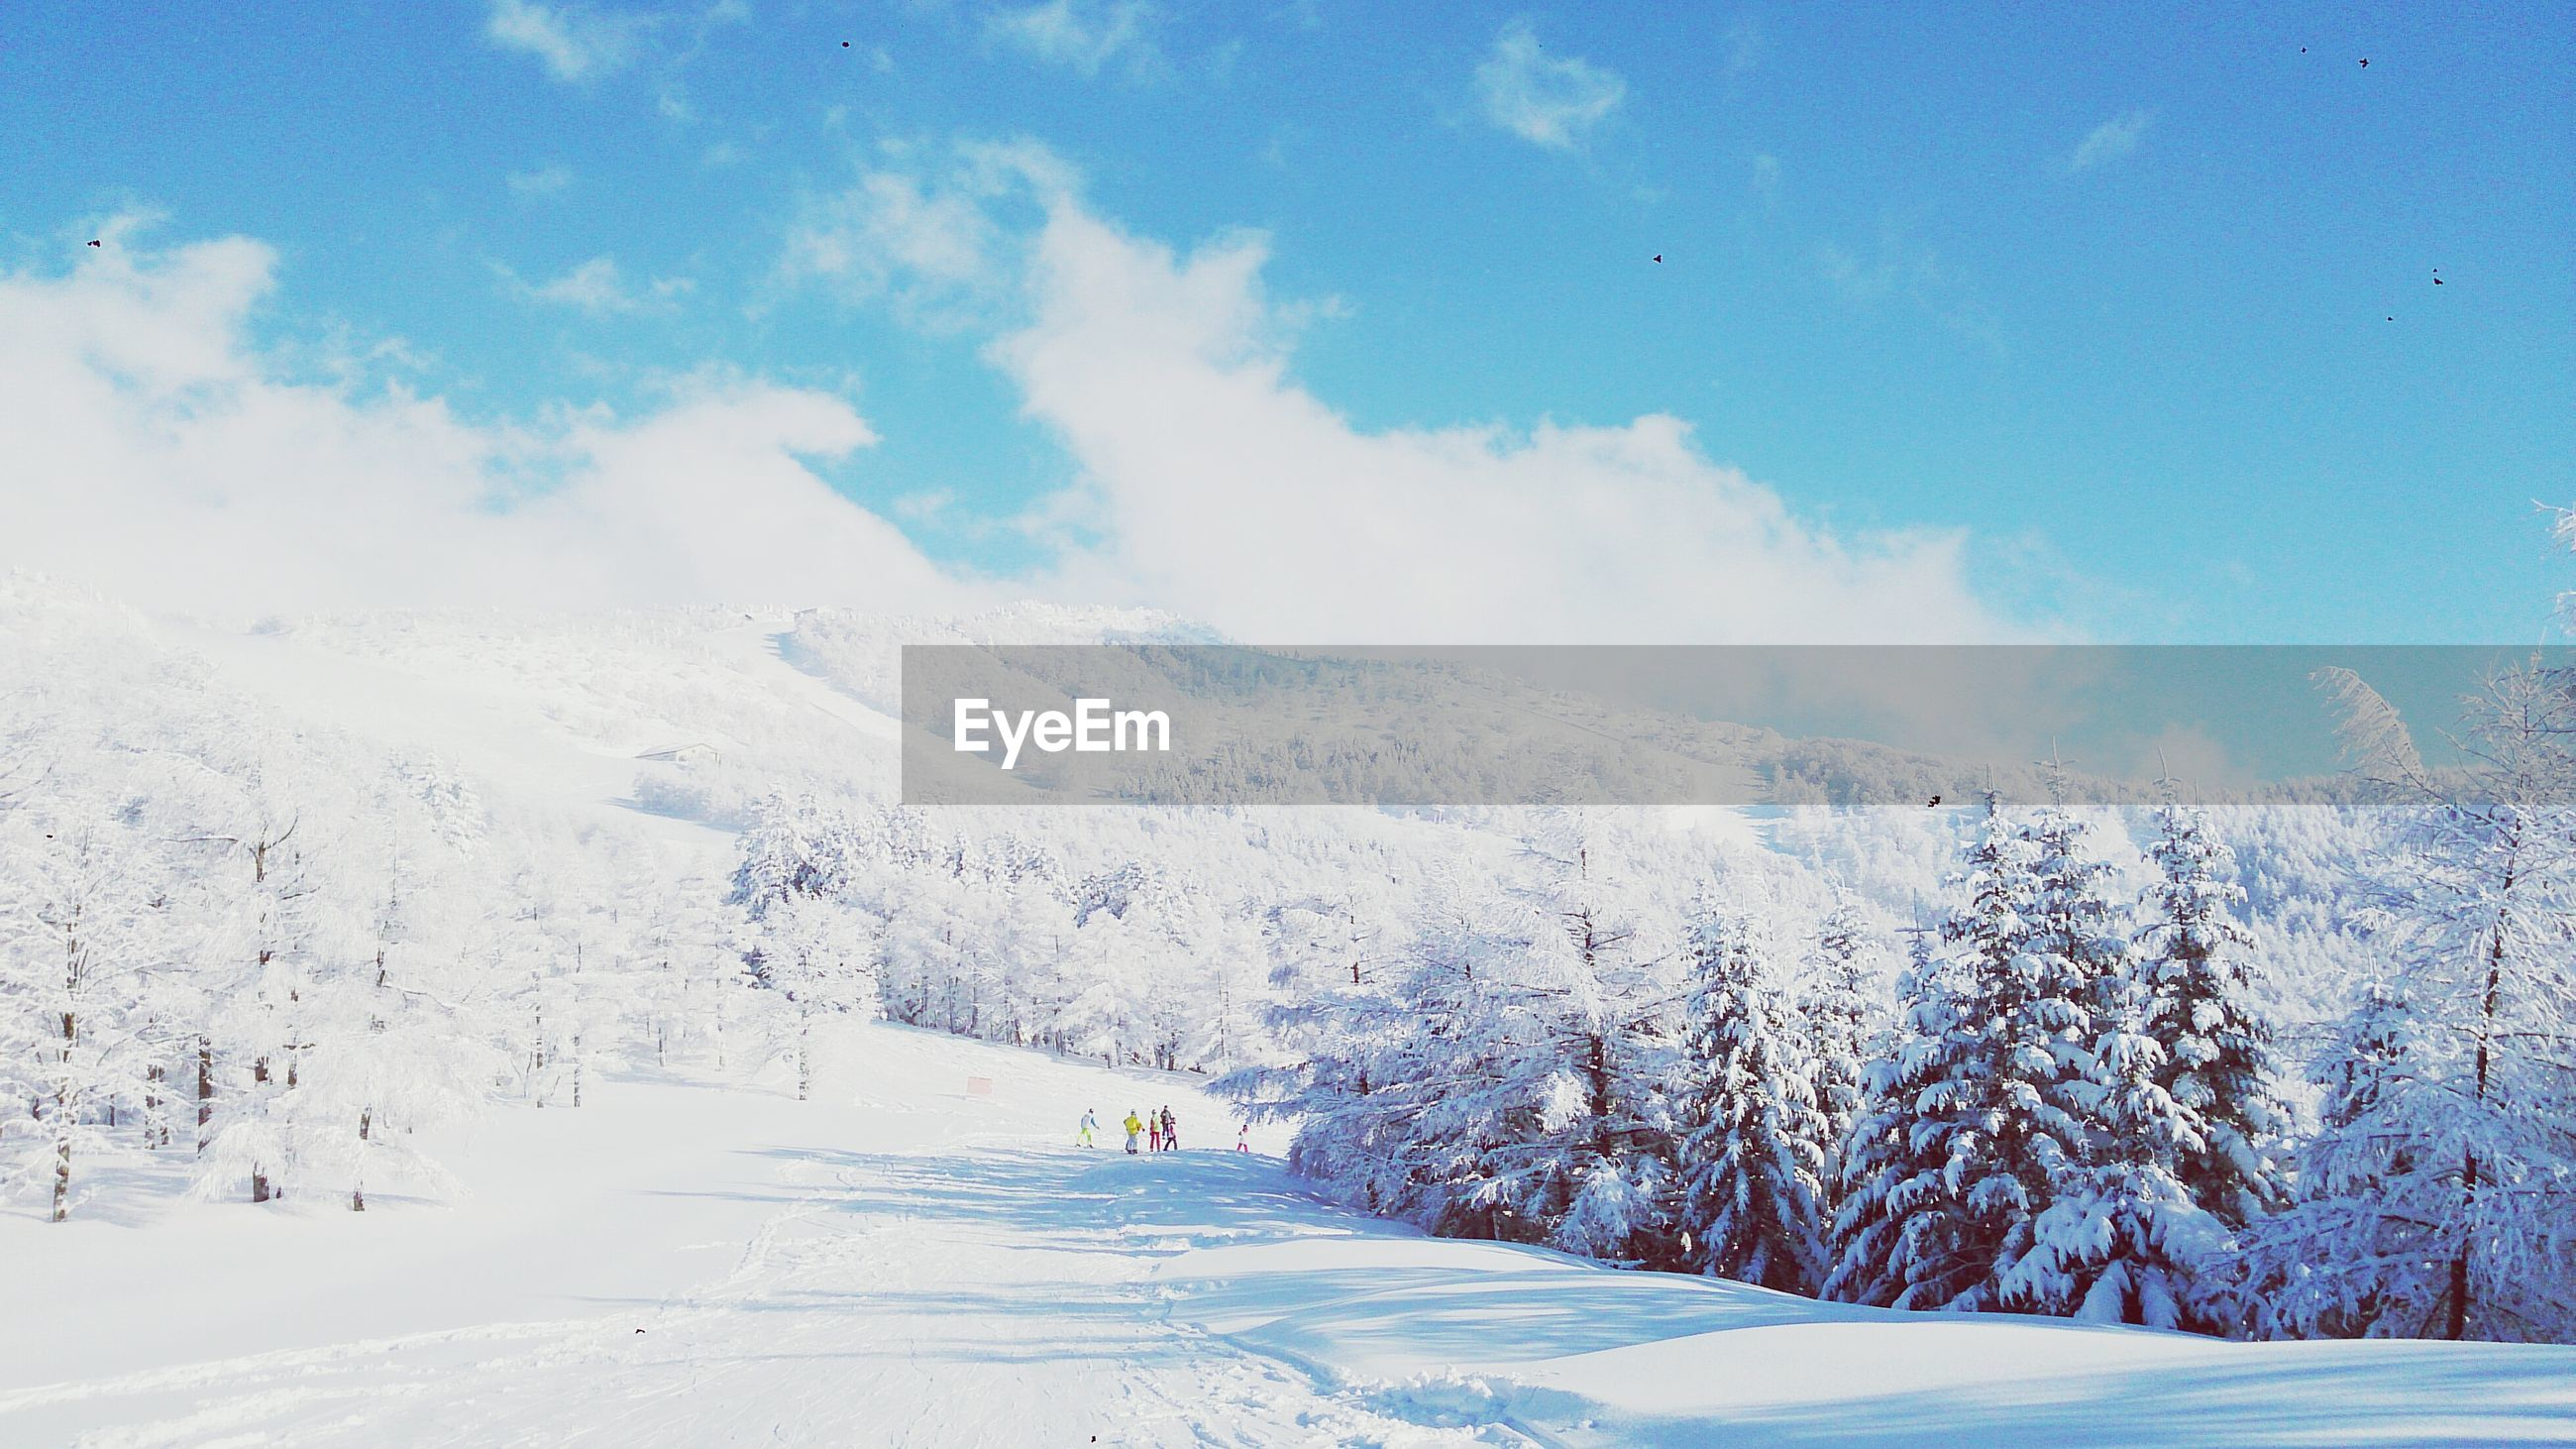 snow, winter, cold temperature, season, weather, landscape, tranquil scene, tranquility, beauty in nature, covering, scenics, tree, nature, sky, white color, mountain, non-urban scene, blue, snowcapped mountain, snow covered